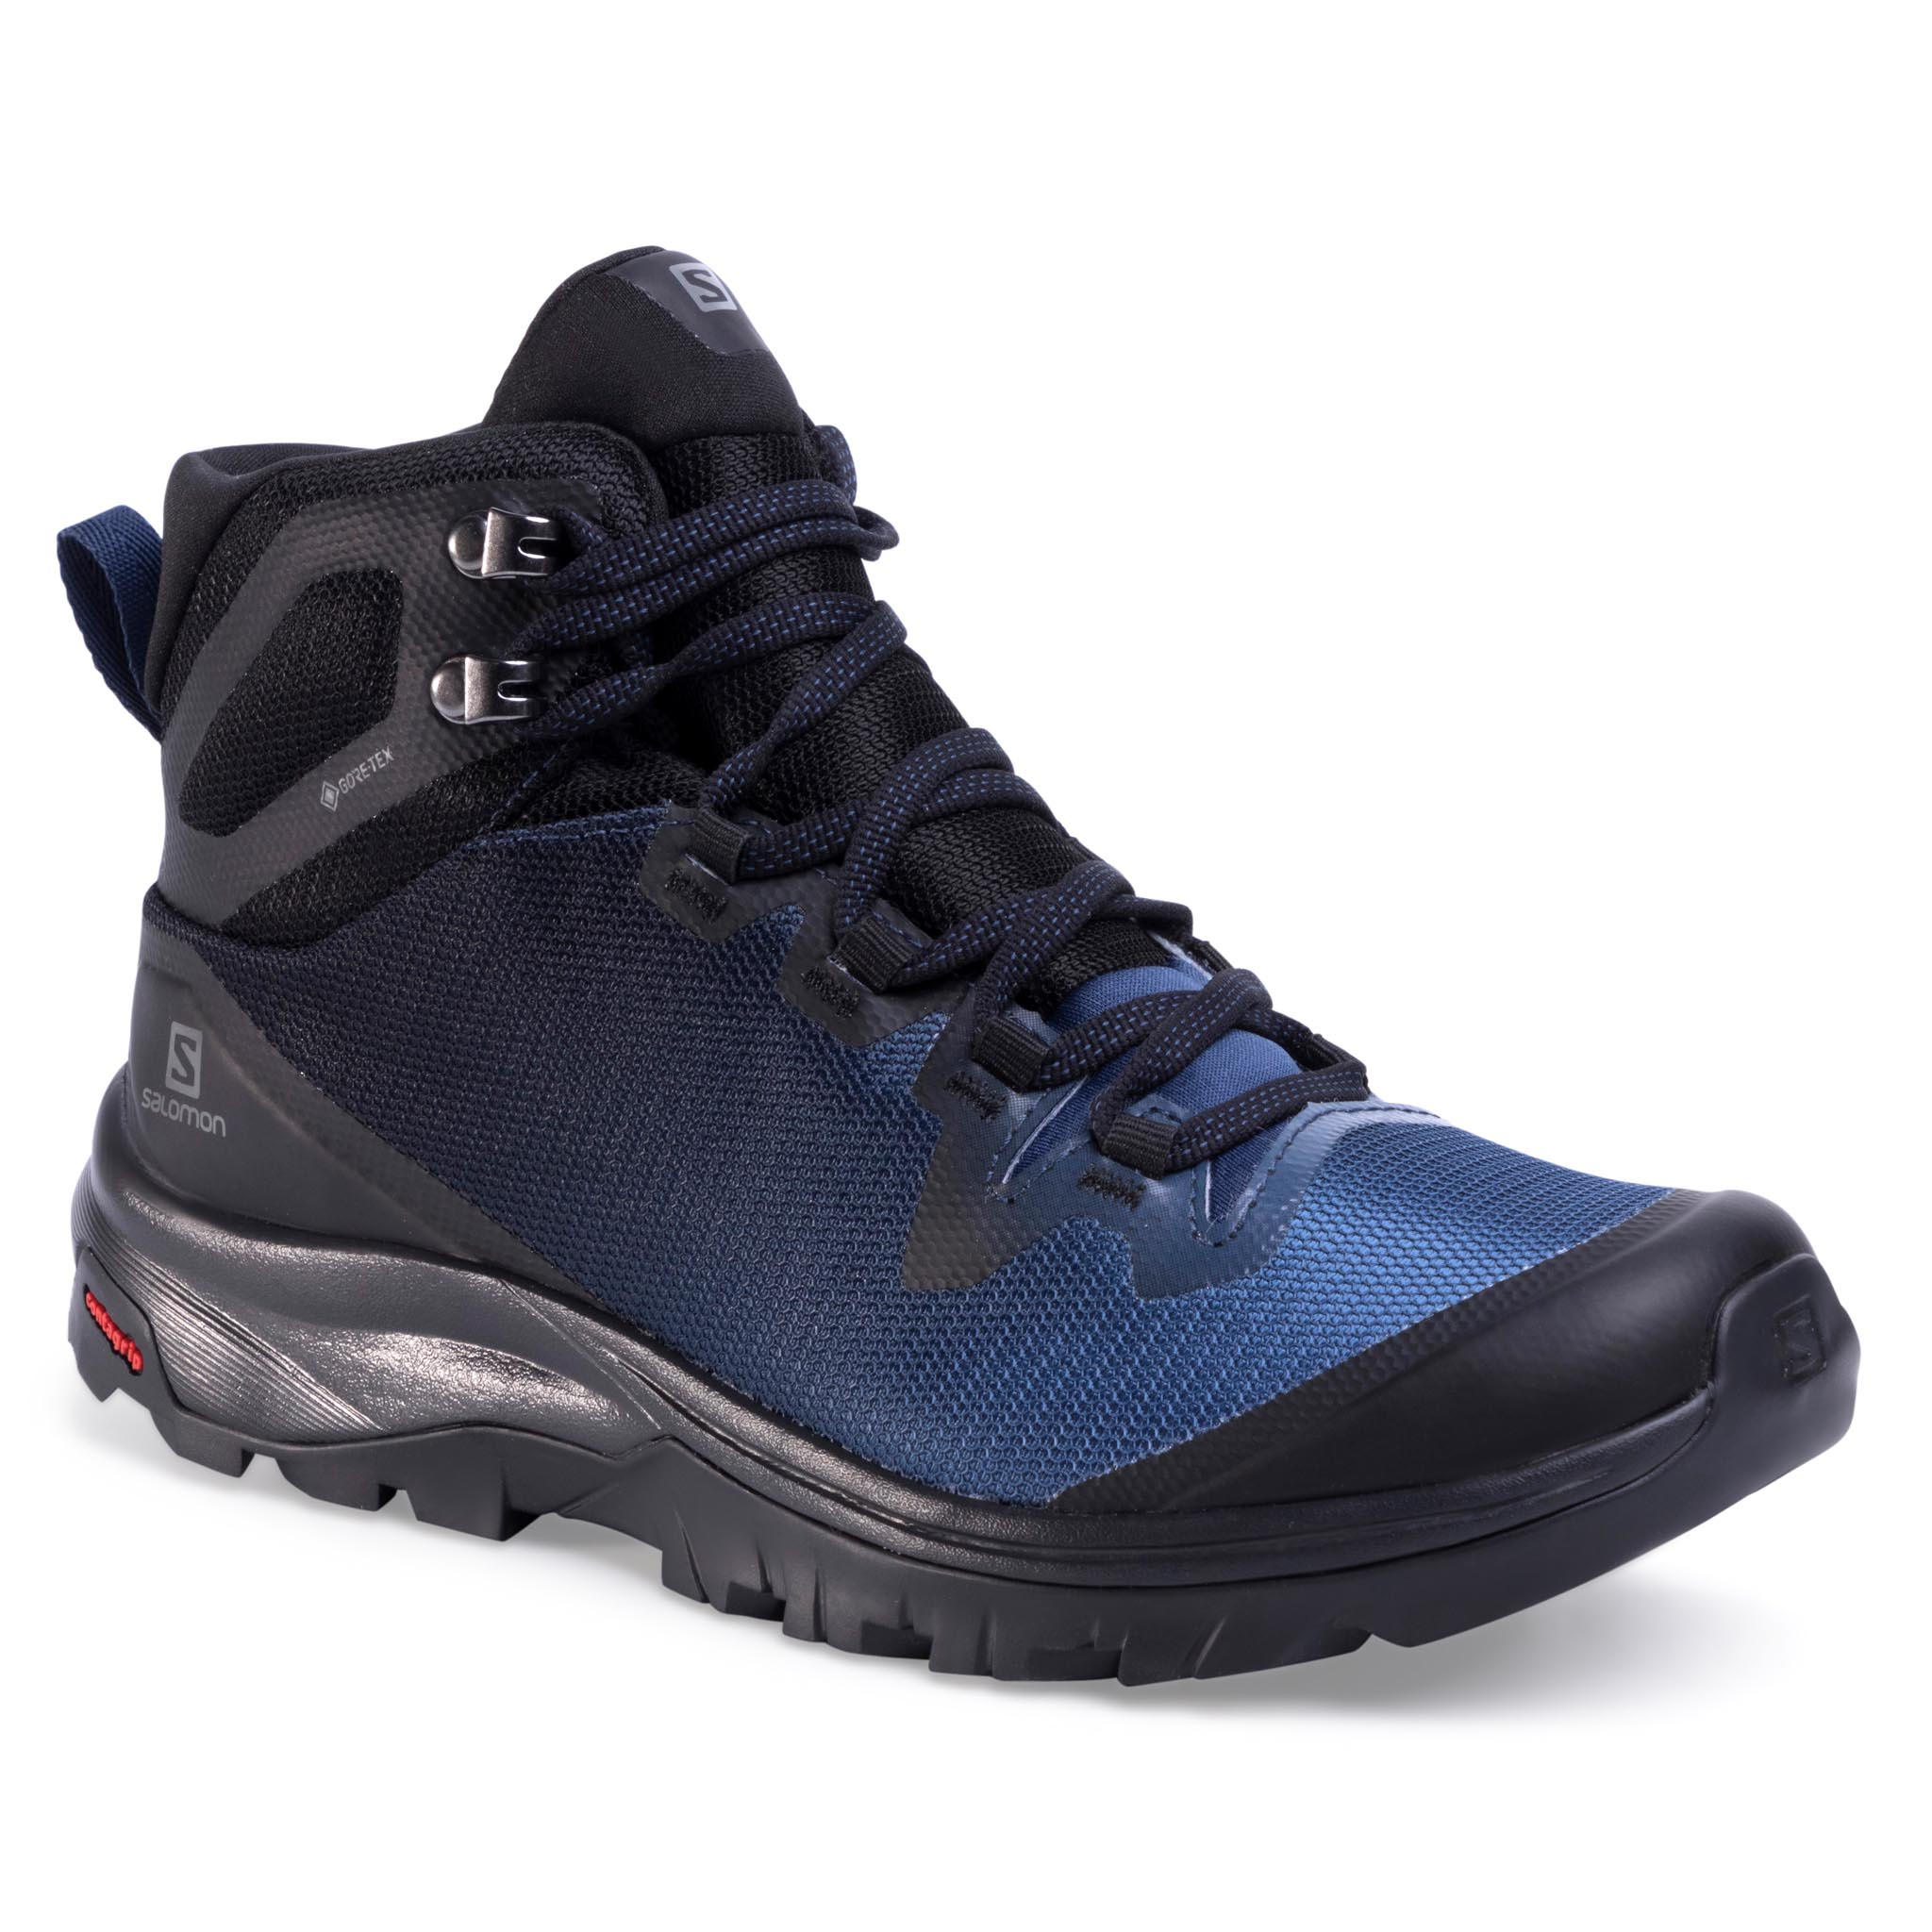 Trekkings Salomon - Vaya Mid Gtx 409851 24 V0 Black/Sargasso Sea/Black imagine epantofi.ro 2021